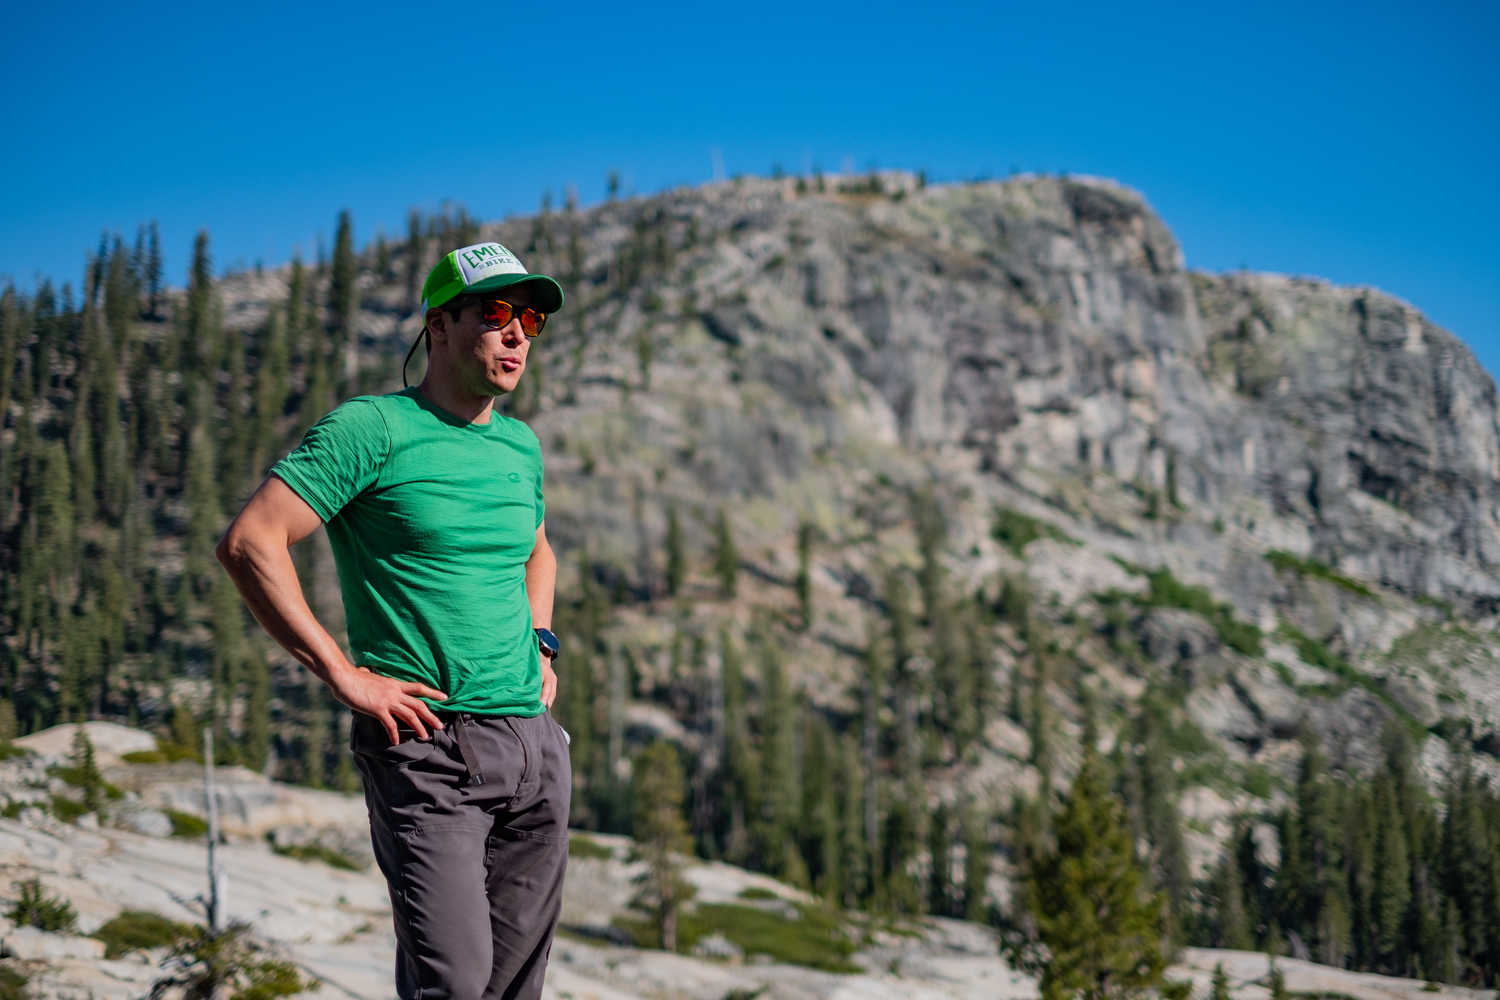 Comfortable hiking pants and a merino hiking shirt will serve you well in Yosemite.   Photo by Duncan Cheung.